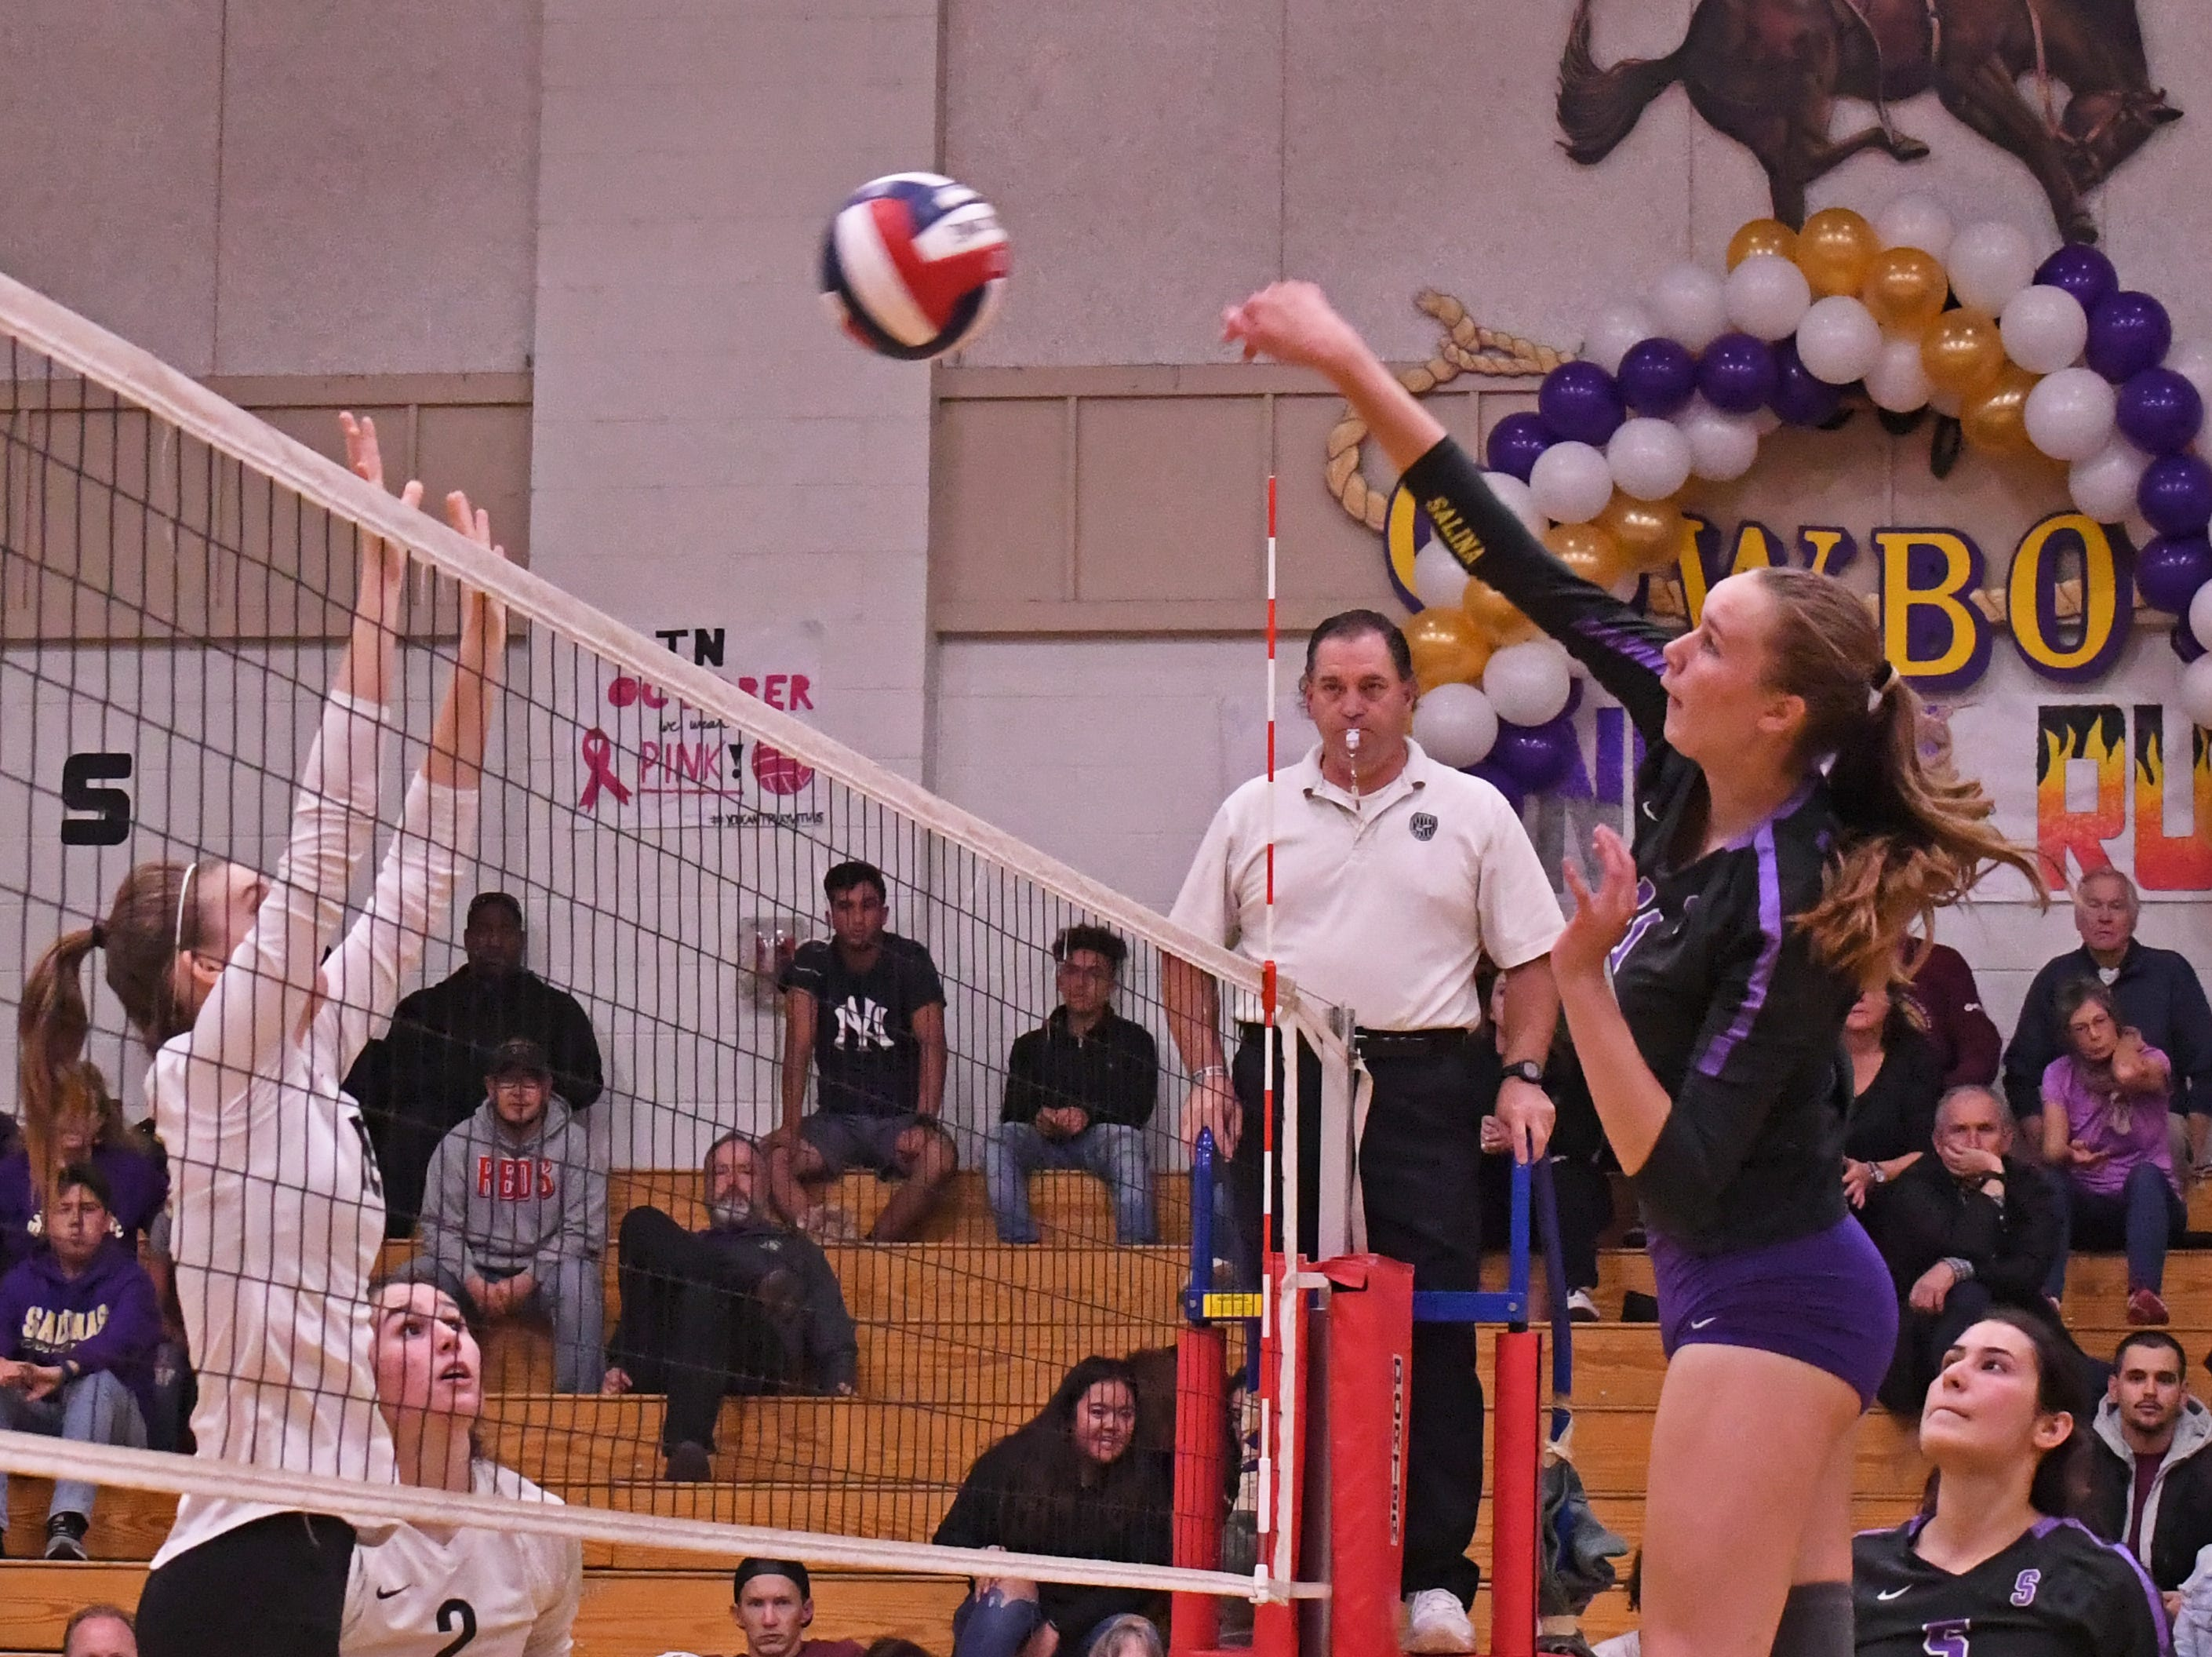 Middle blocker Savannah Maker (11) spikes the ball to Los Gatos' side in the first set.